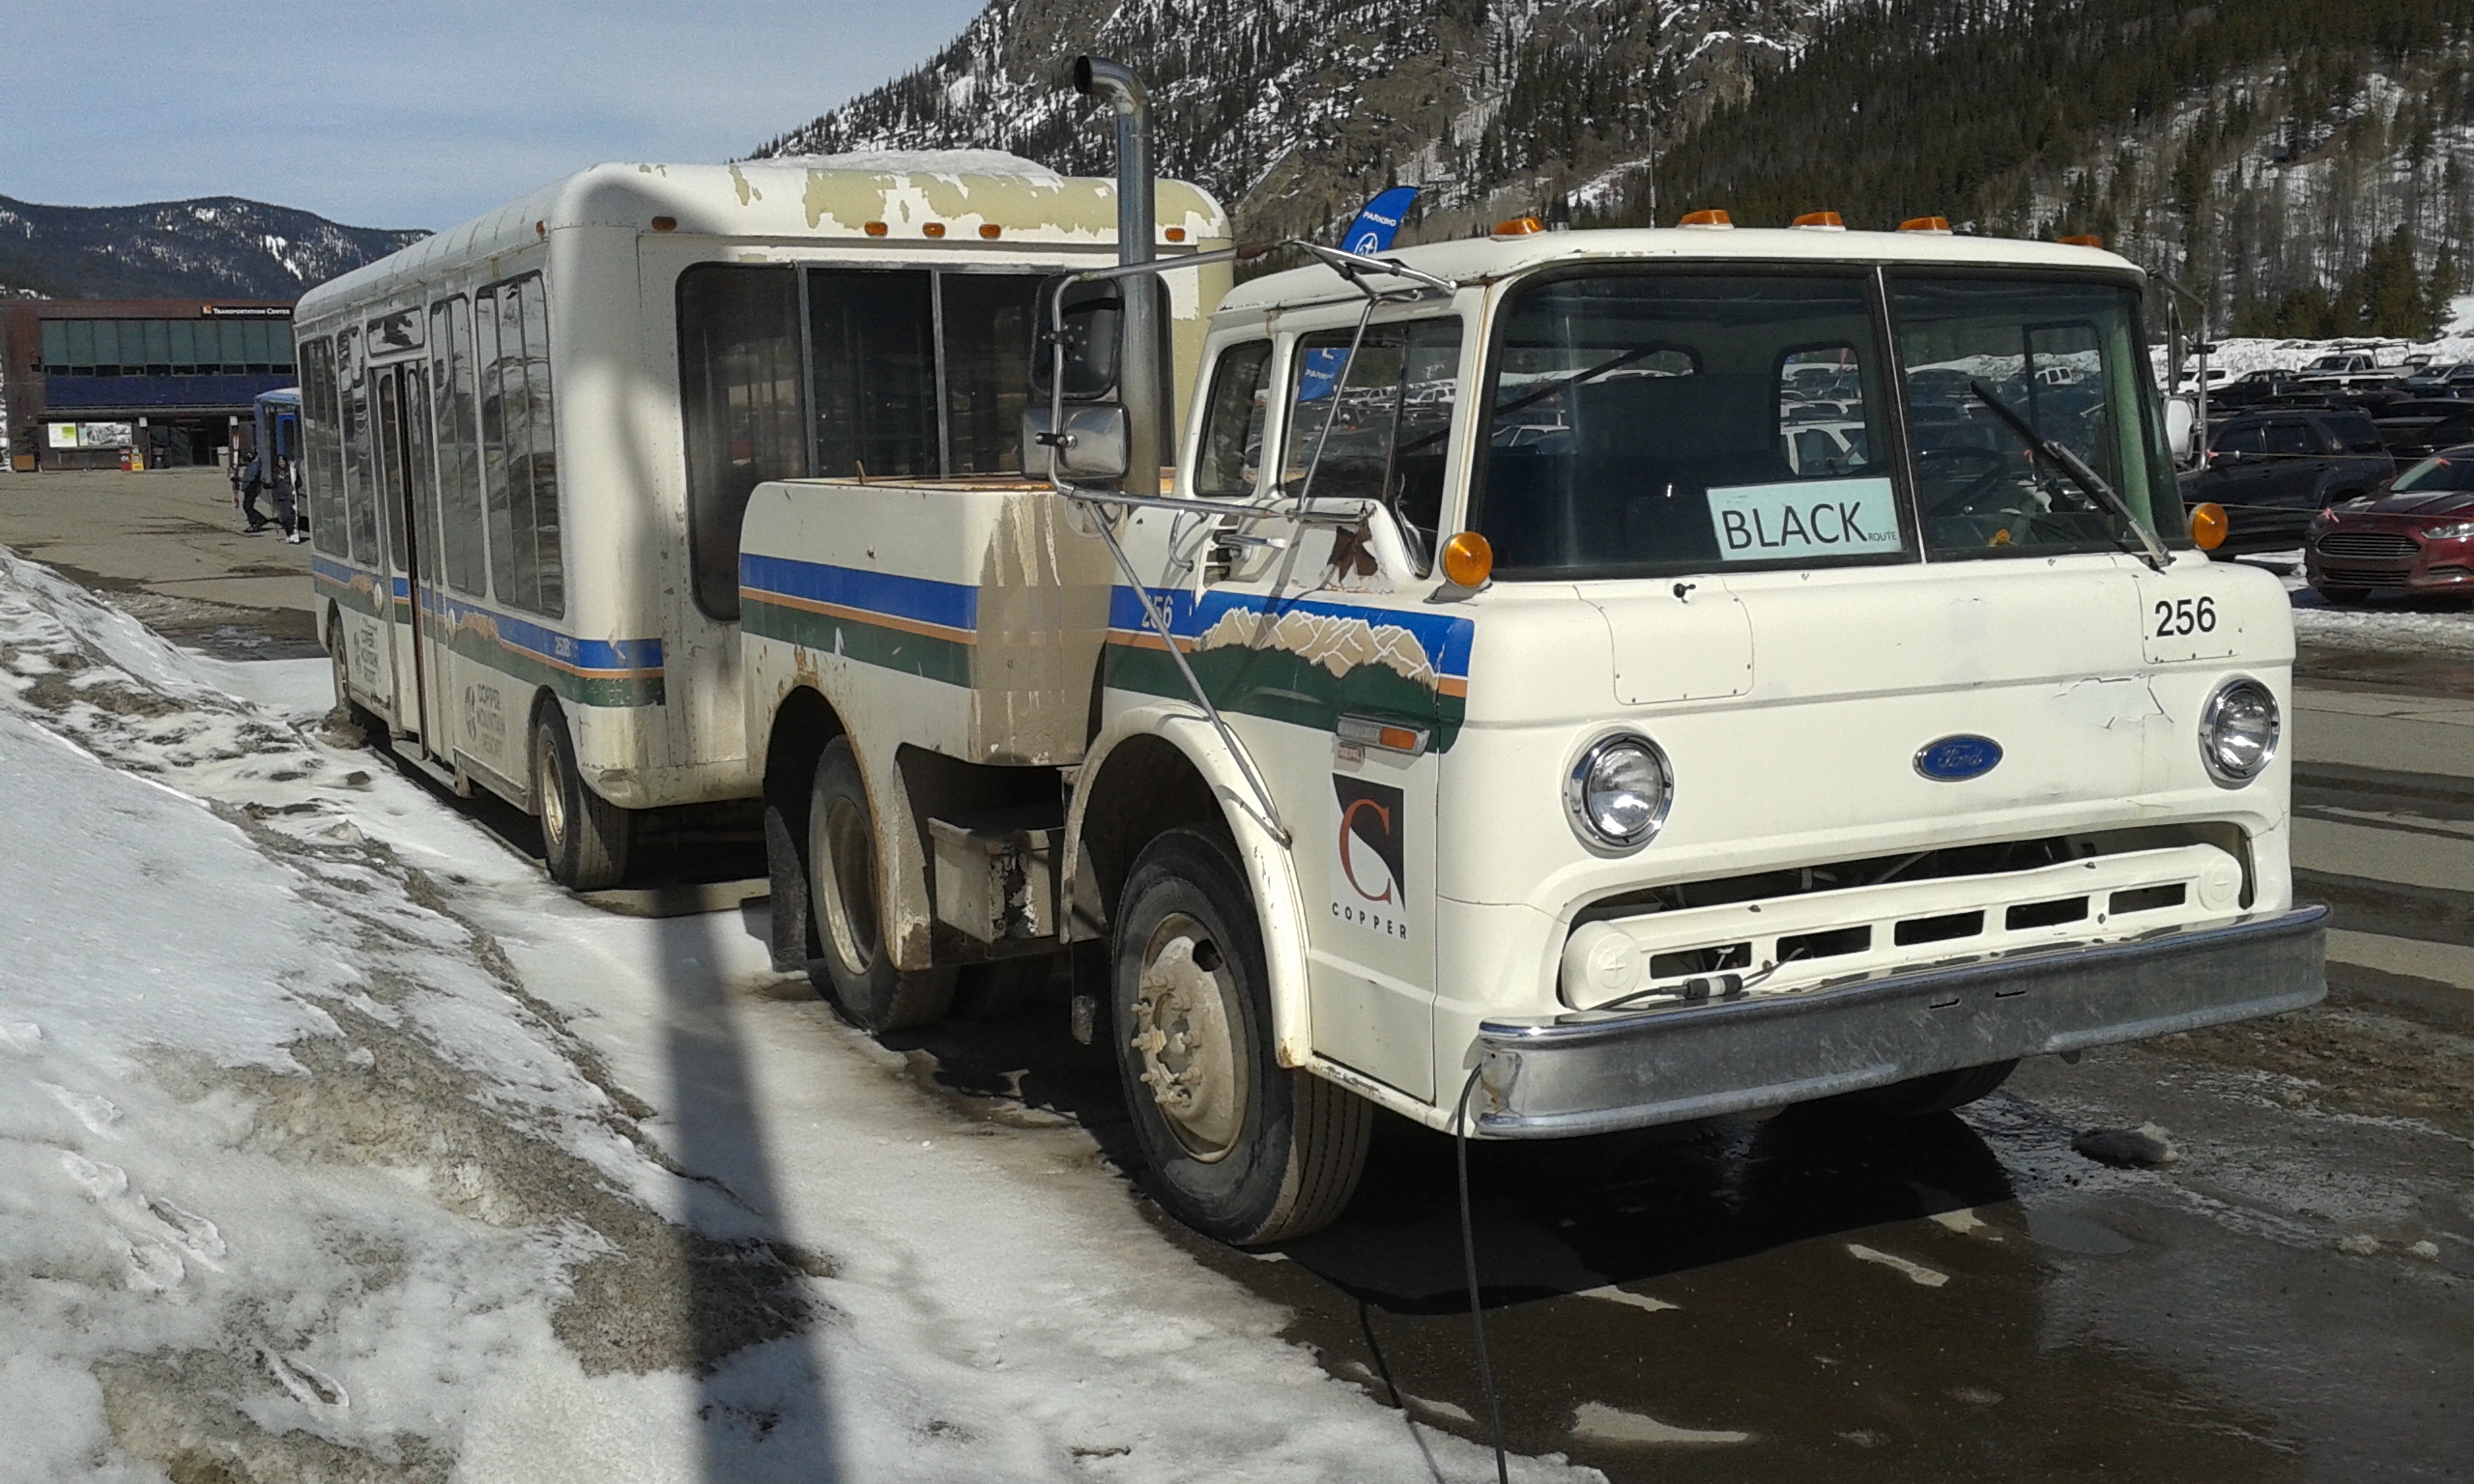 Mtn View Ford >> File:Cab over truck 256 and wagon, Copper Mtn.jpg - Wikimedia Commons